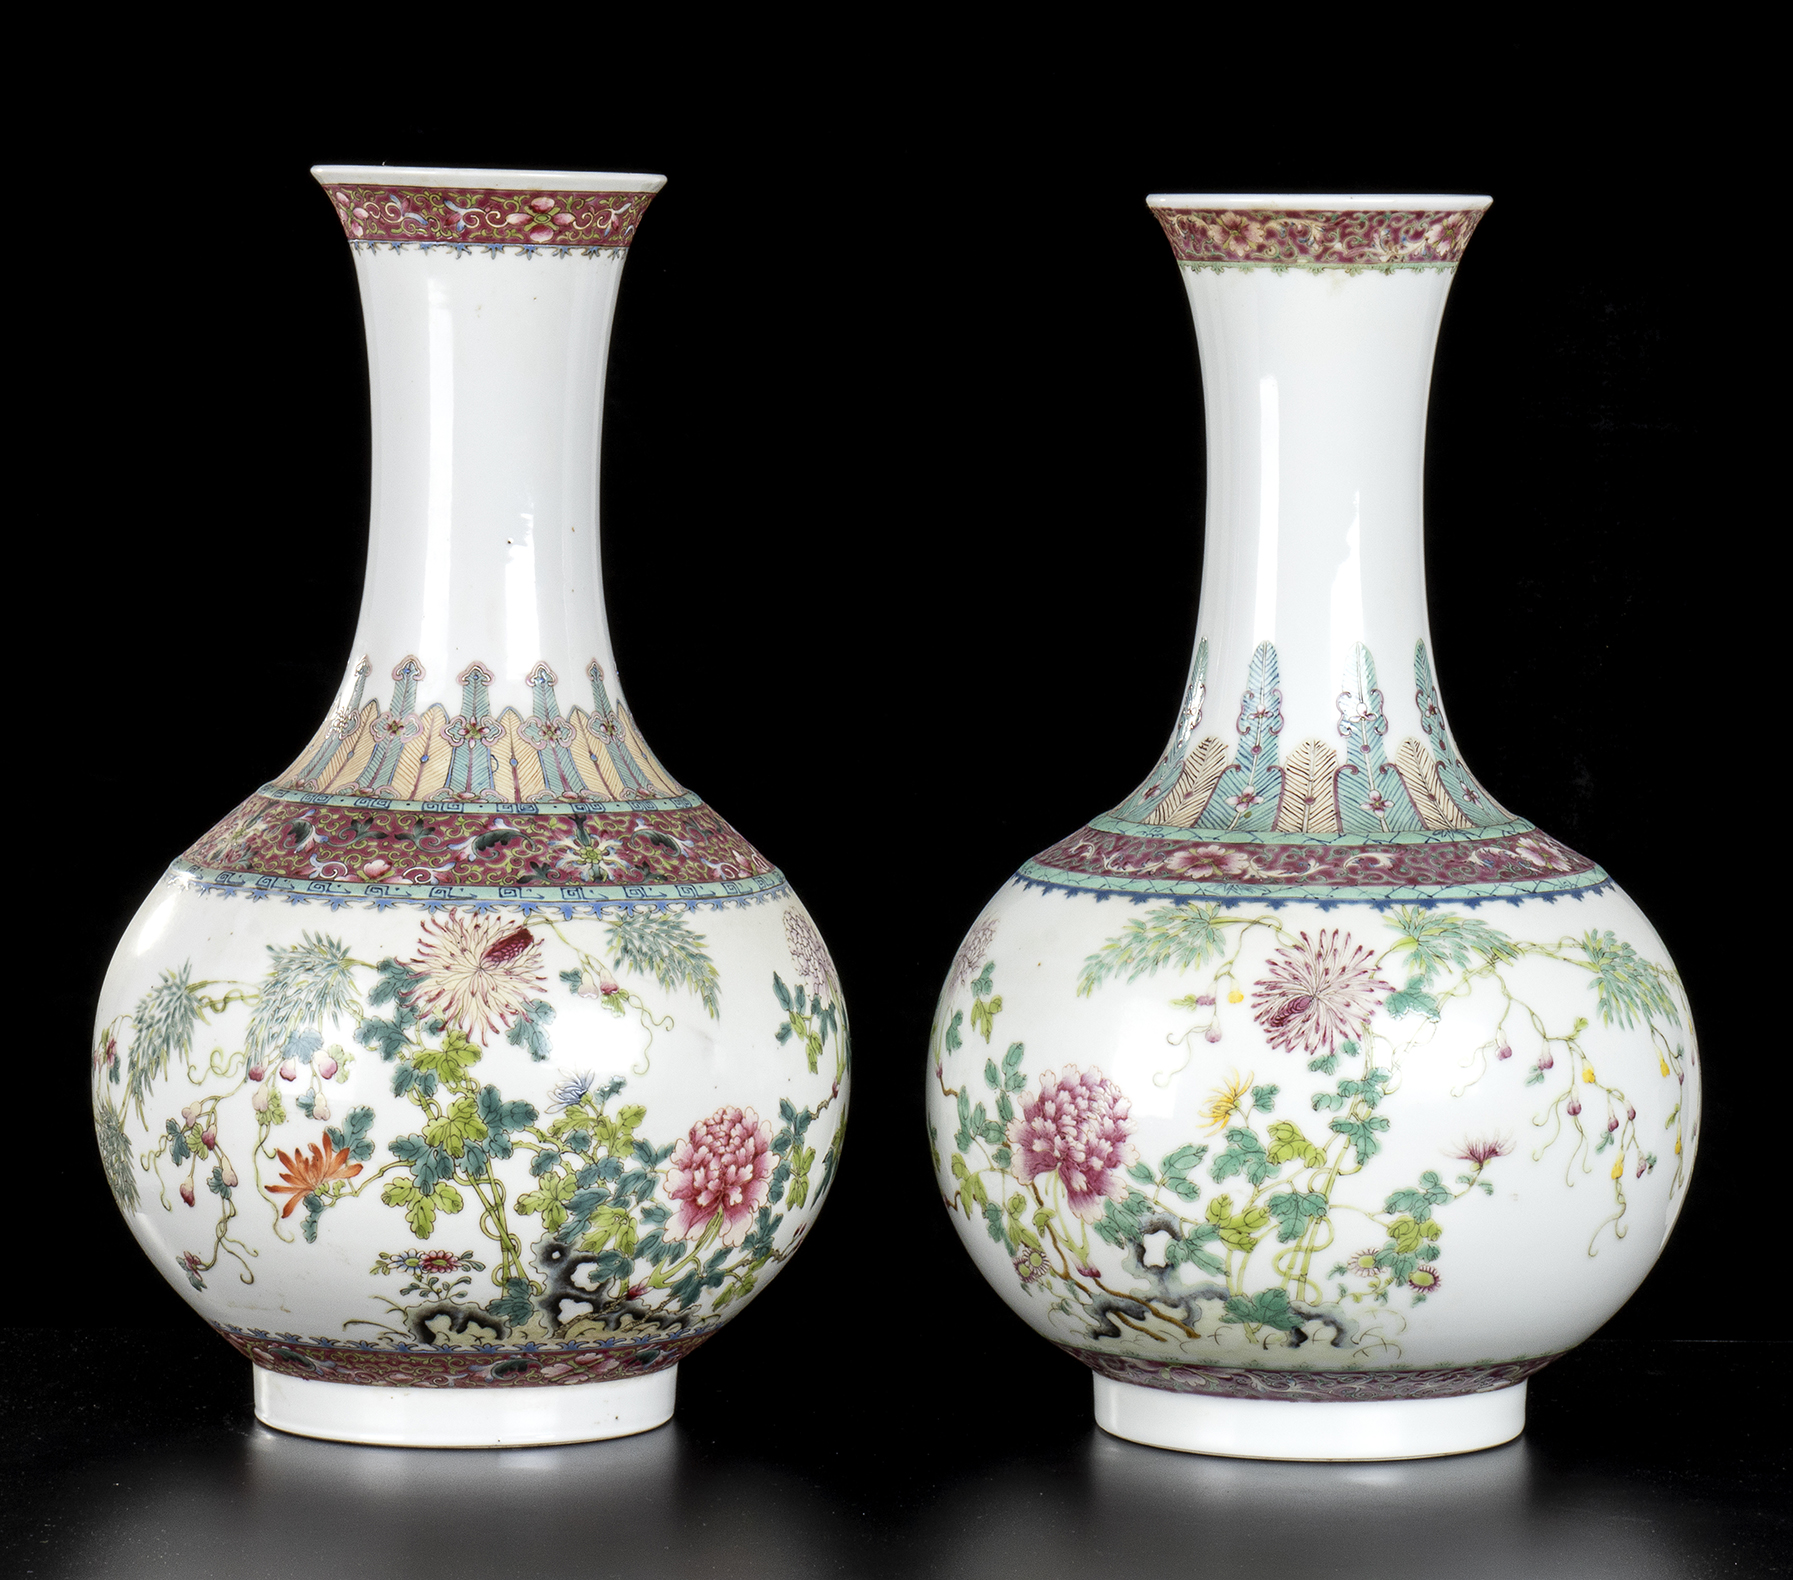 A PAIR OF PORCELAIN BOTTLE VASES WITH POLYCHROME DECORATIONChina, first half of the 20th century